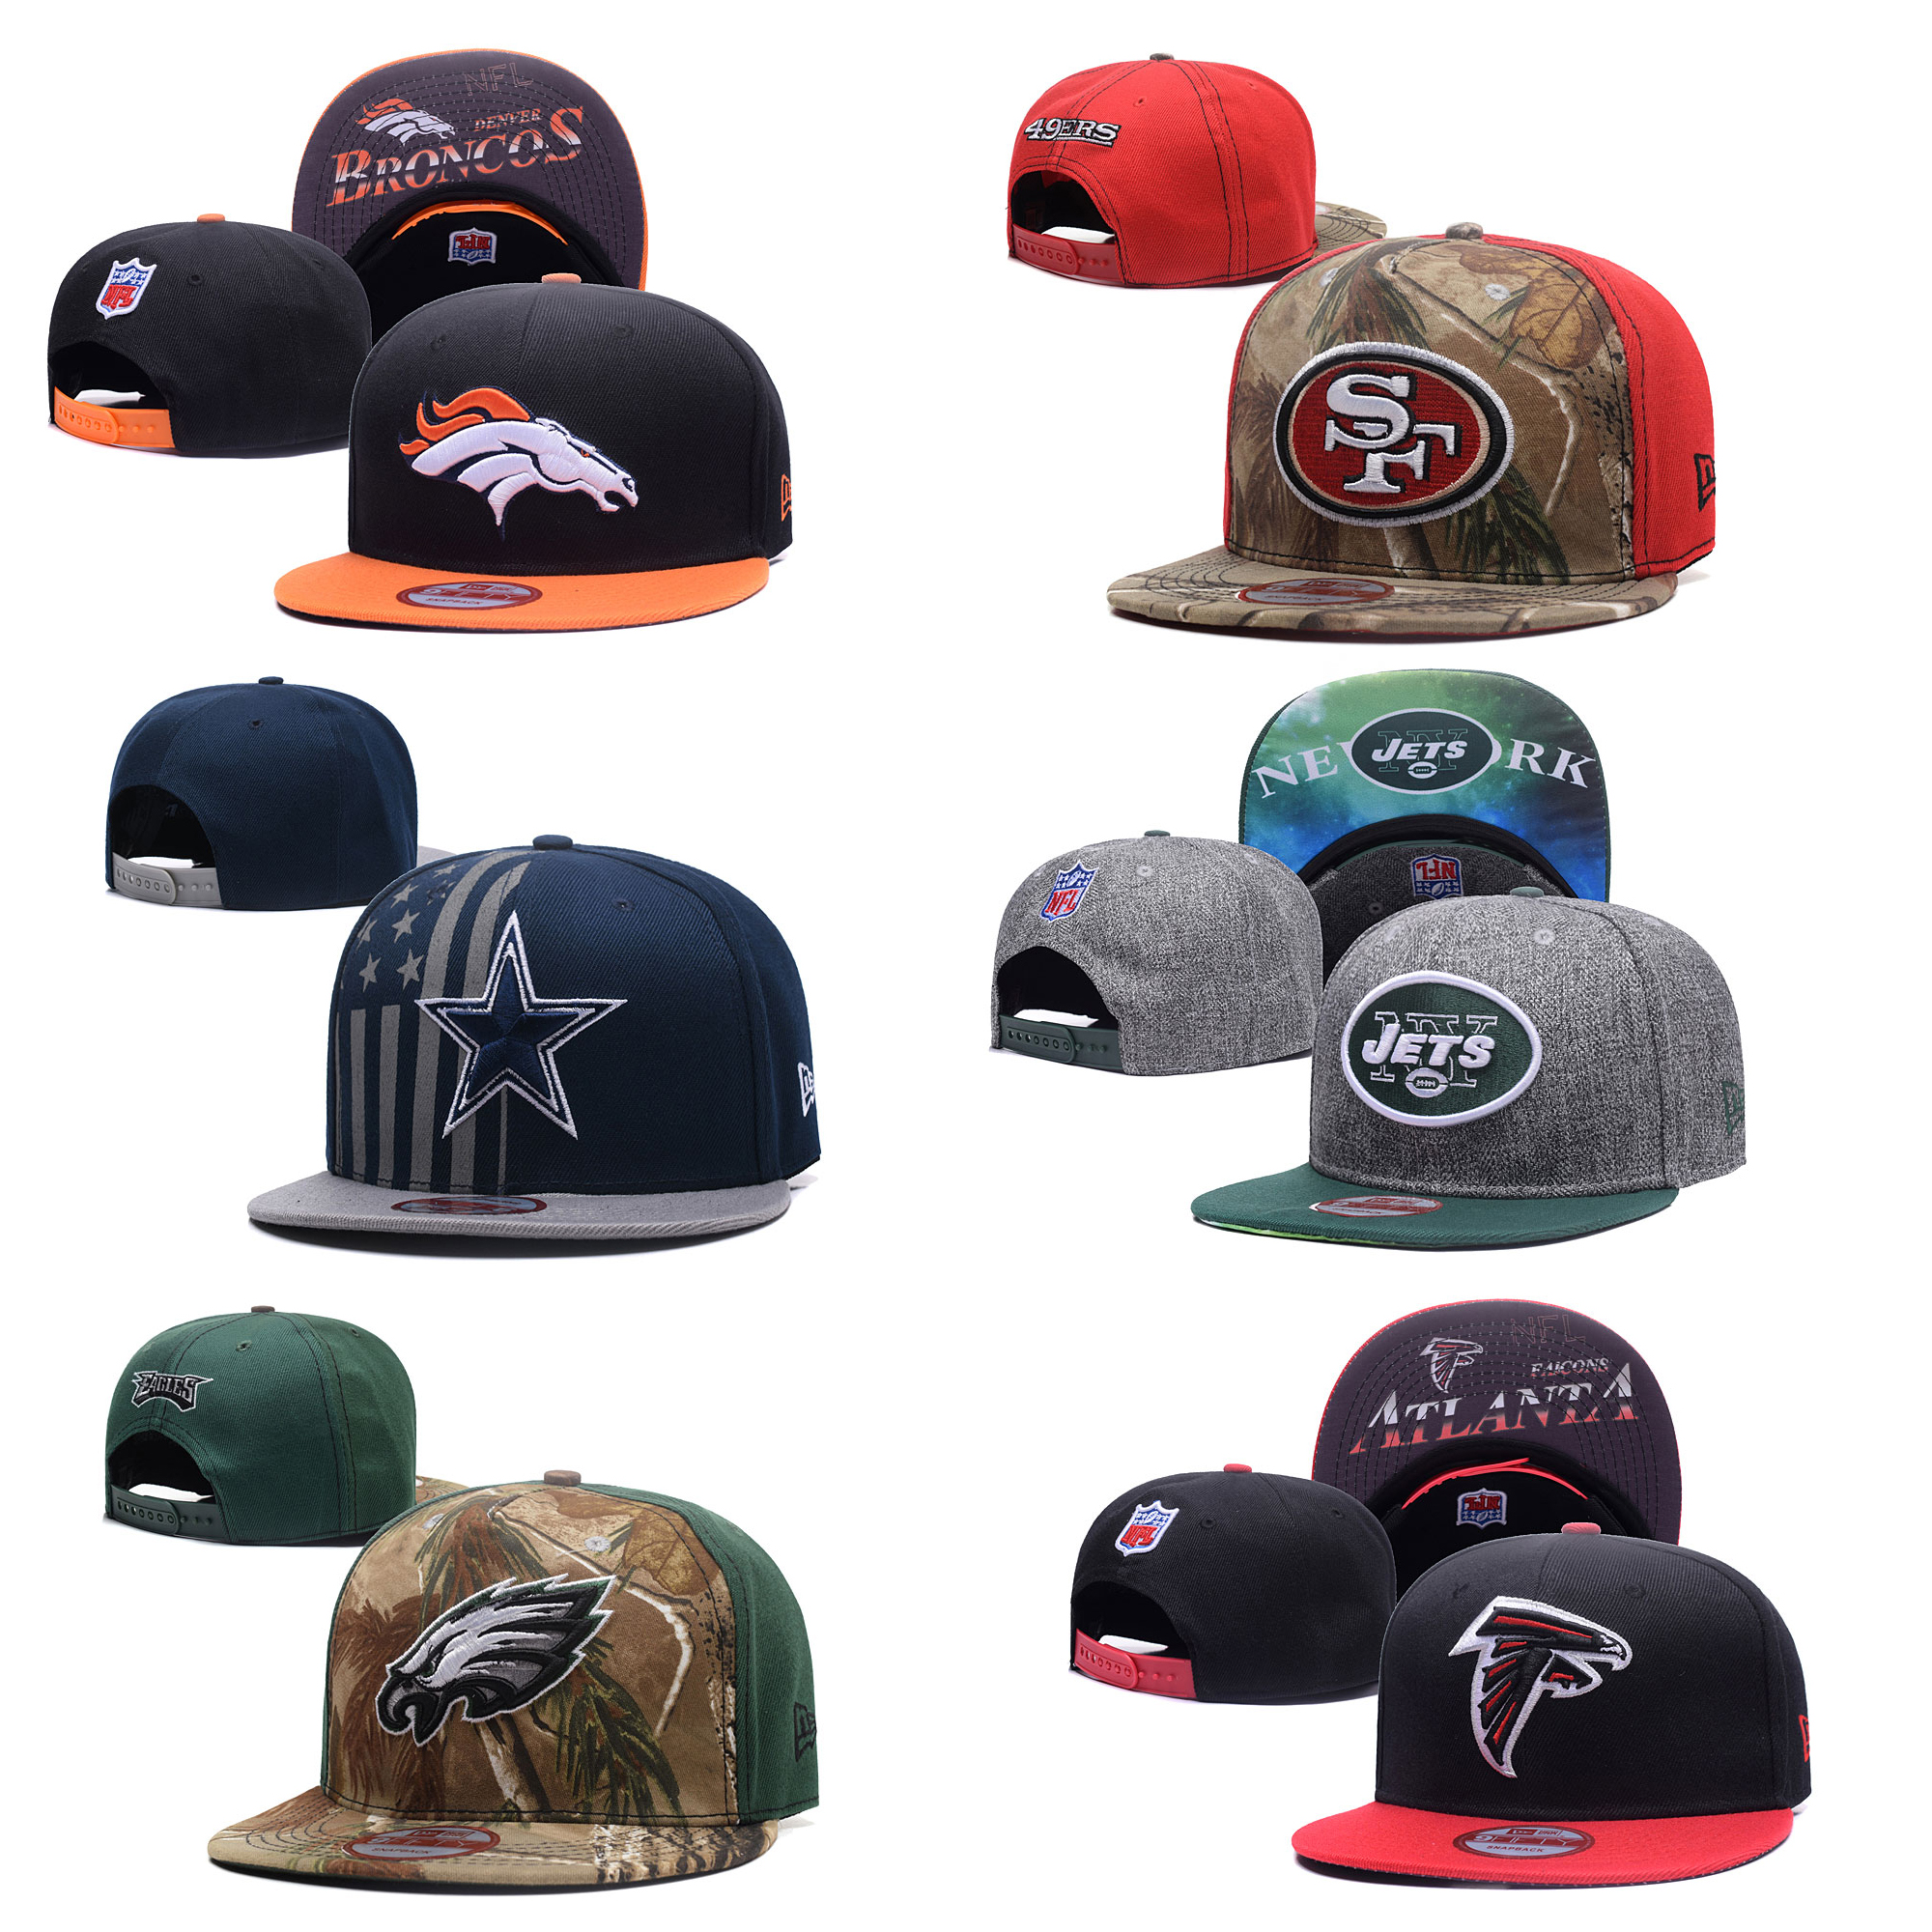 2019 NFL <strong>hats</strong> wholesale for 32 American football teams